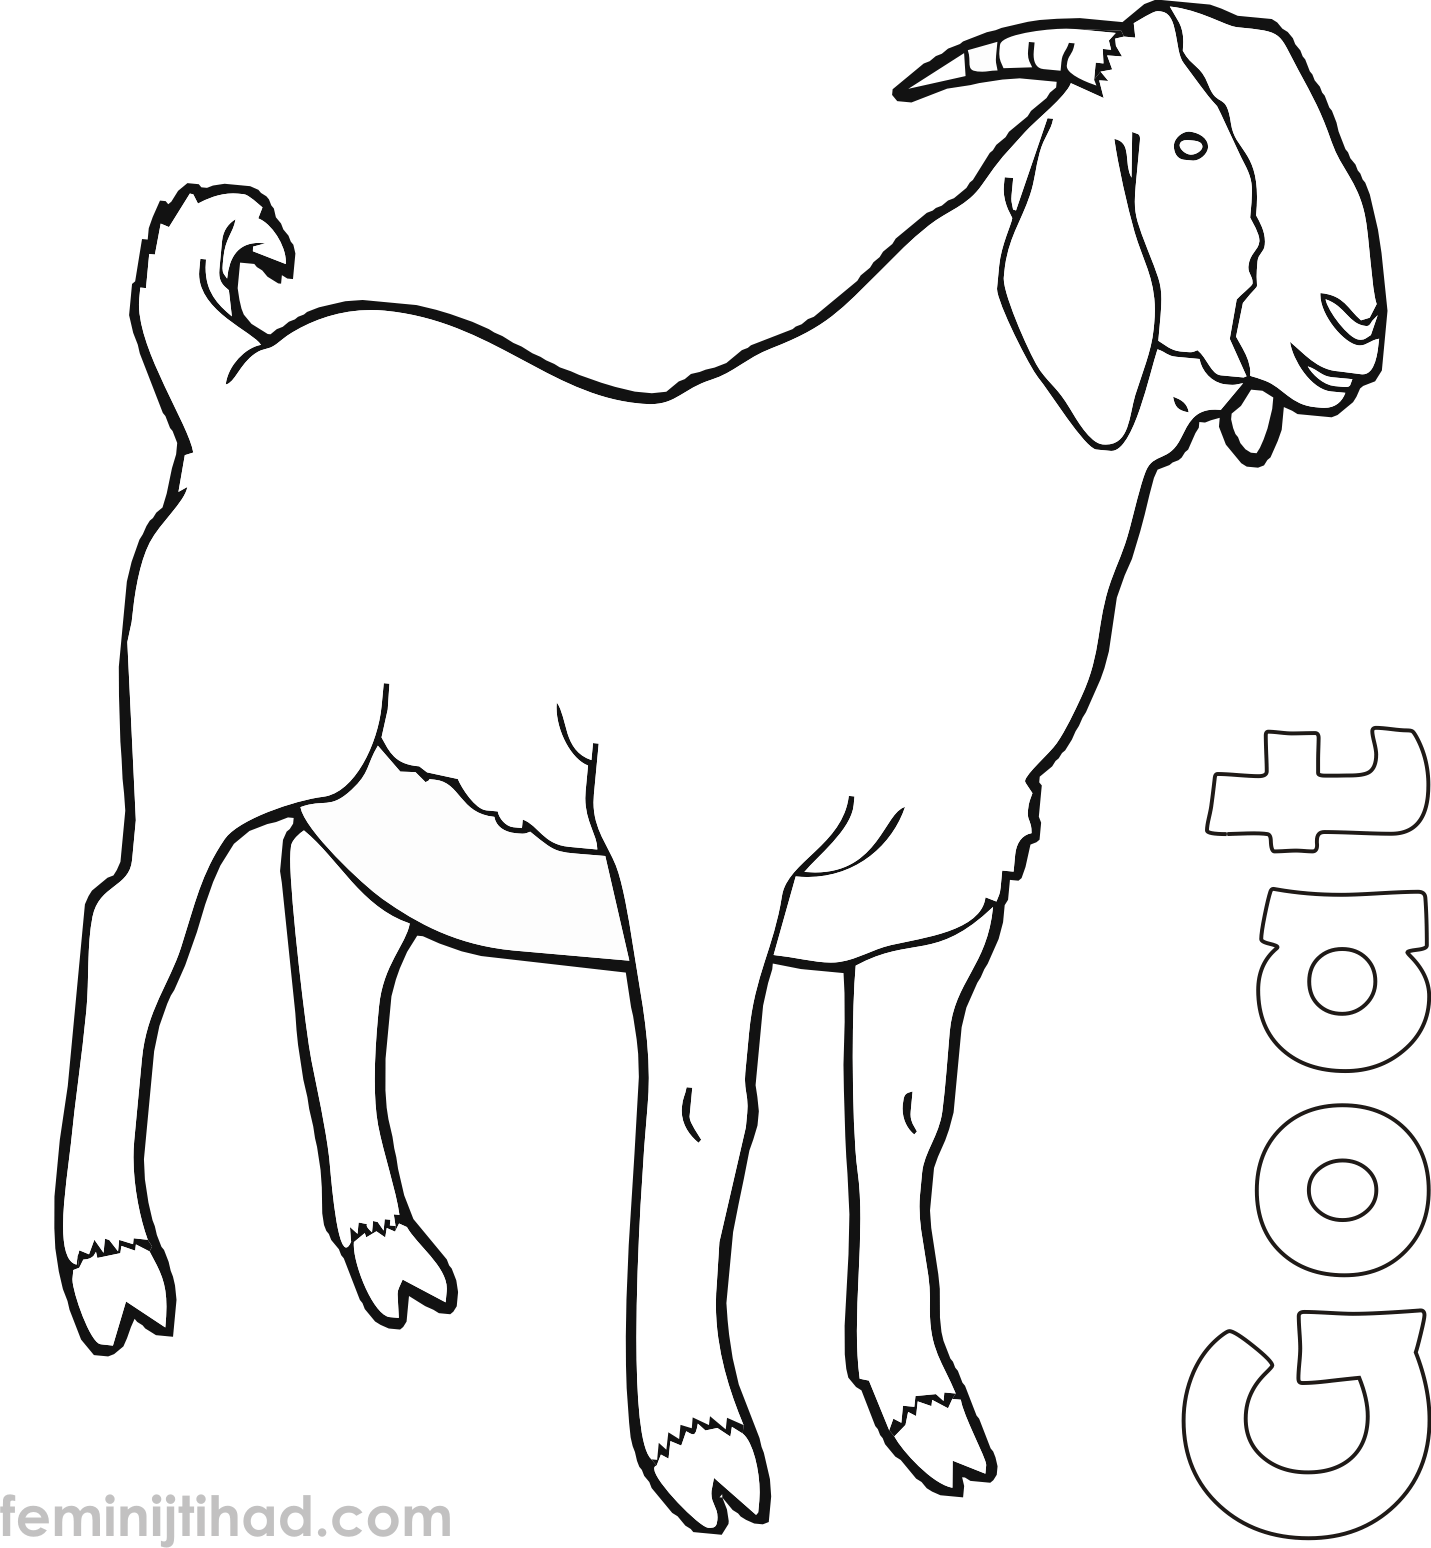 Cute Goat Coloring Pages Printable Free Coloring Sheets Cute Goats Animal Outline Shape Coloring Pages